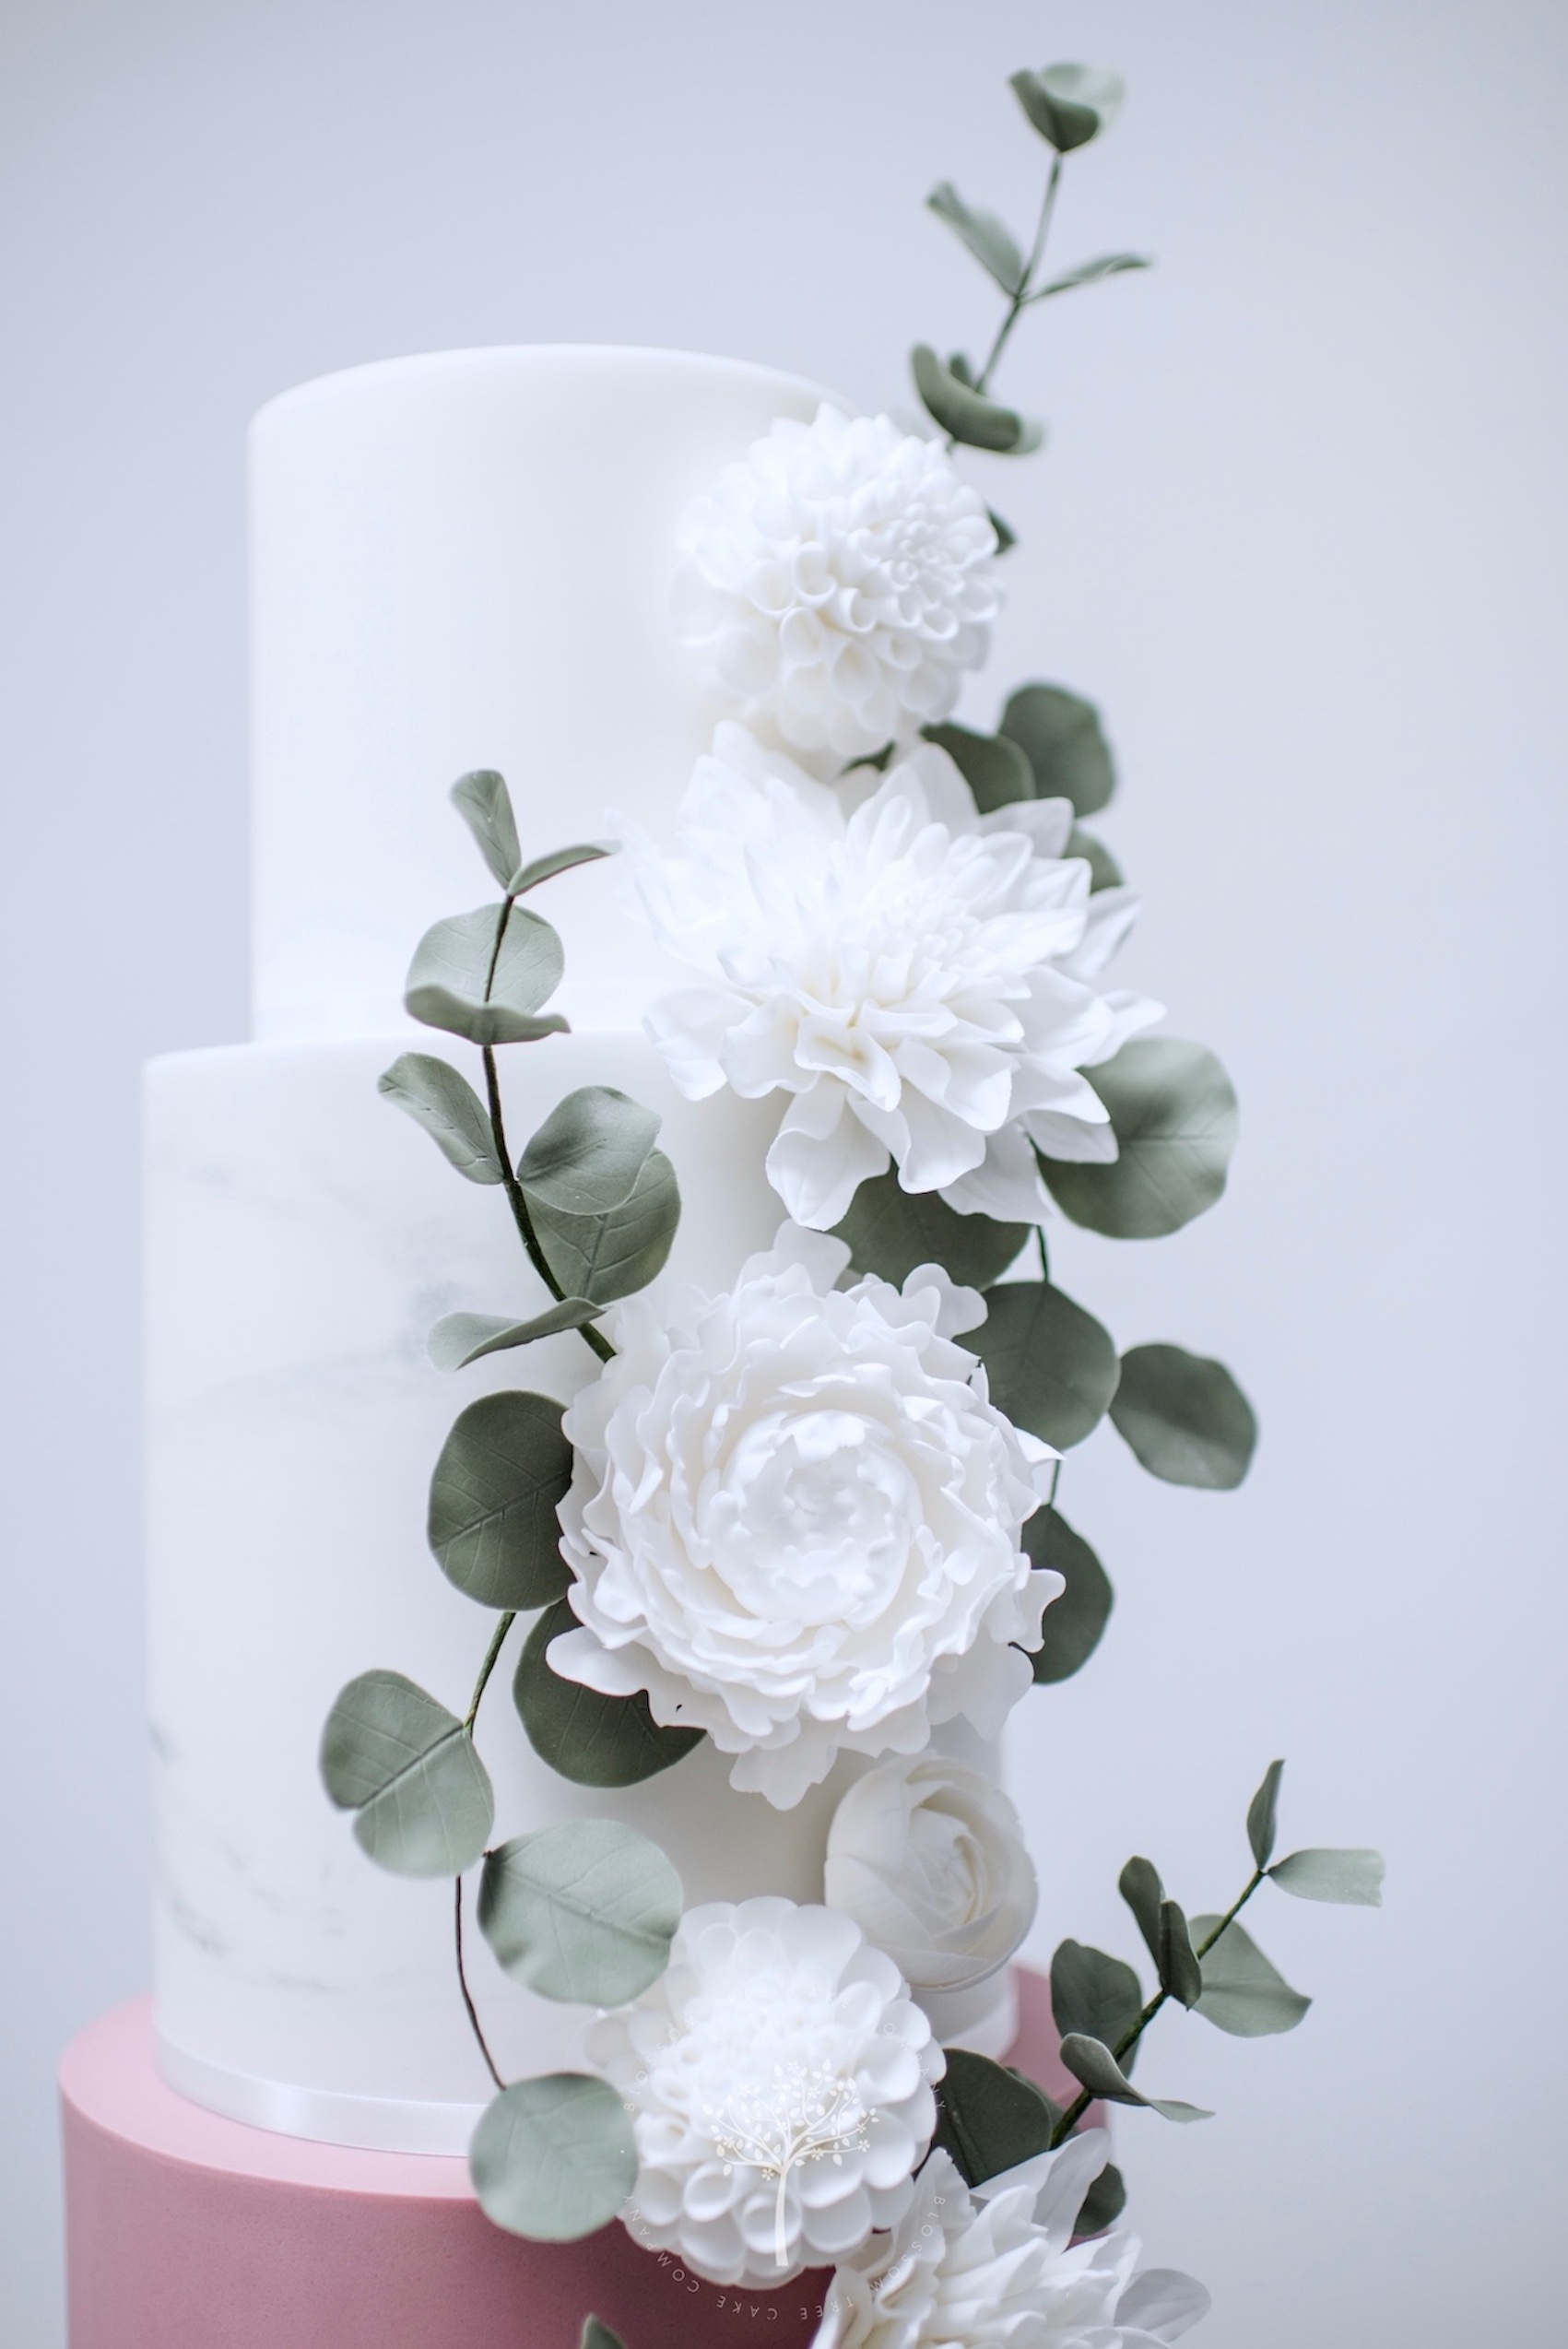 Marble & White Dahlias wedding cake by Blossom Tree Cake Company Harrogate North Yorkshire - top sugar flowers.jpg